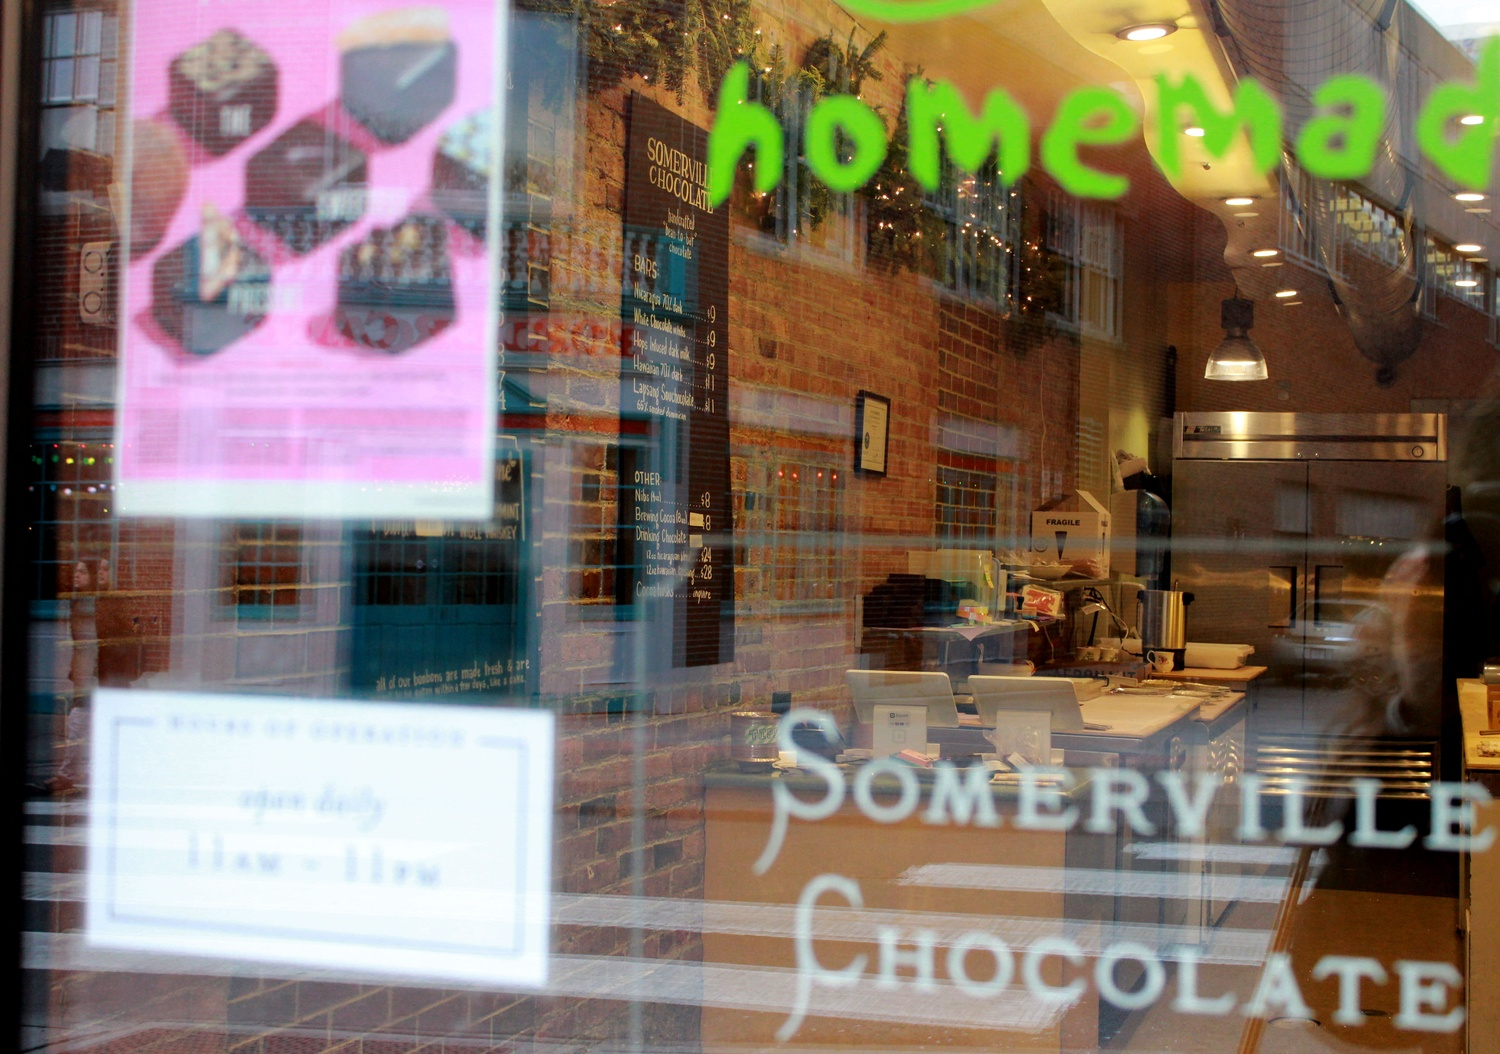 Pop-Up Chocolate Shop